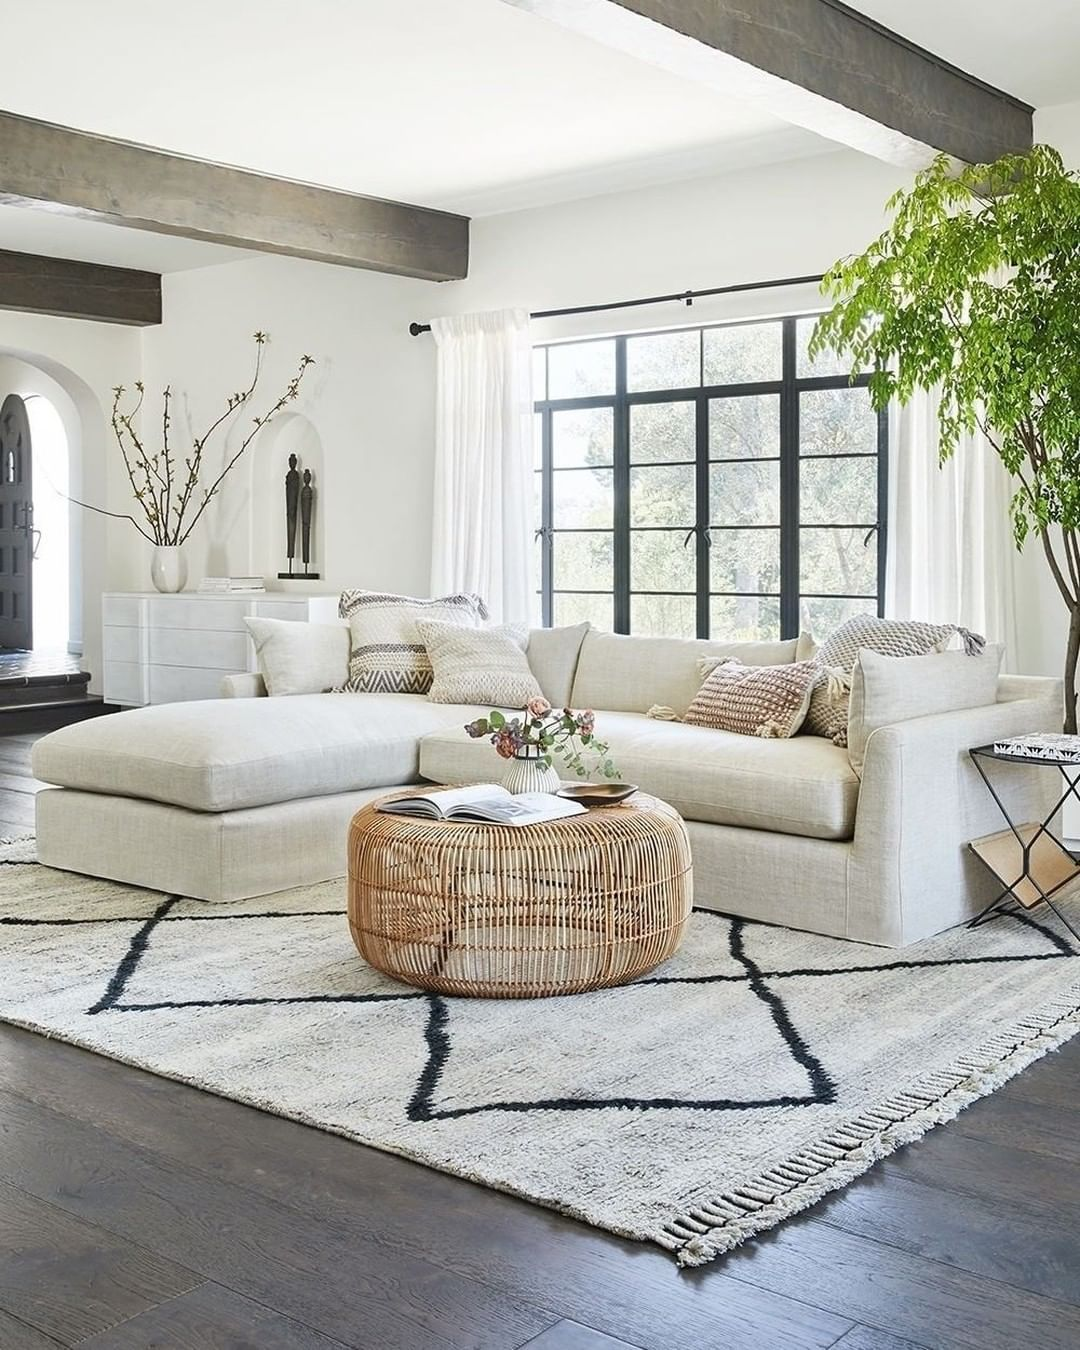 Spacious living room by @luluandgeorgia. Visualize any @luluandgeorgia item in your home with the DecorMatters app (link in bio)! Click the image to try our free home design app.  (Keywords: living room decor, living room ideas, living room designs, dream rooms, house design, home decor ideas, living room rugs, living room furniture, positive vibes, positive thoughts, boho living room)